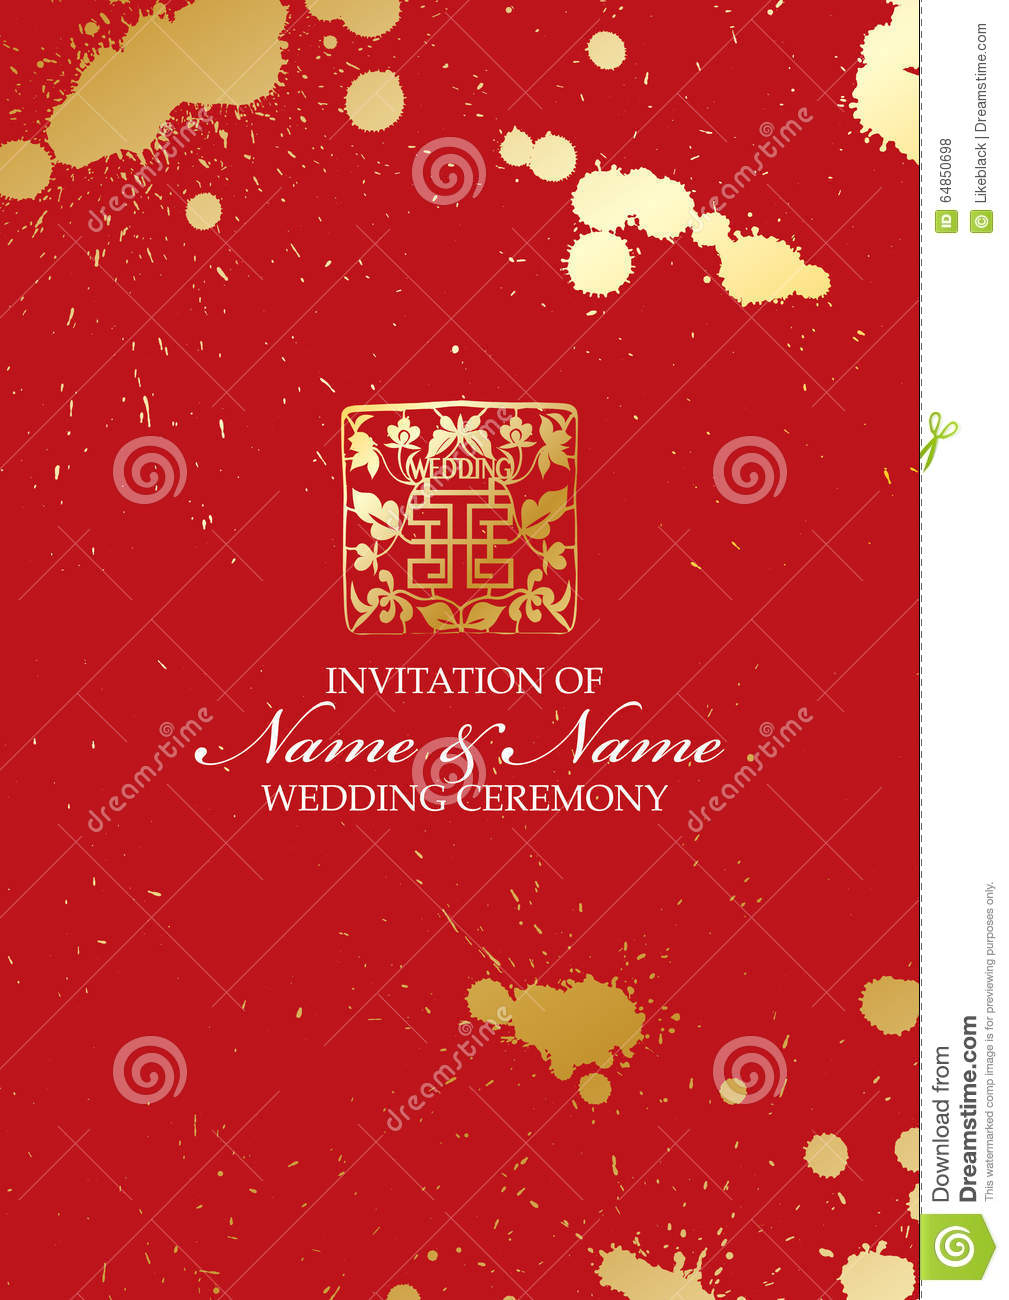 Luxurious paper card type chinese wedding inviation card bengali wedding invitation card kerala wedding cards chinese wedding invitation Luxurious paper card type chinese wedding inviation card bengali wedding invitation card kerala wedding